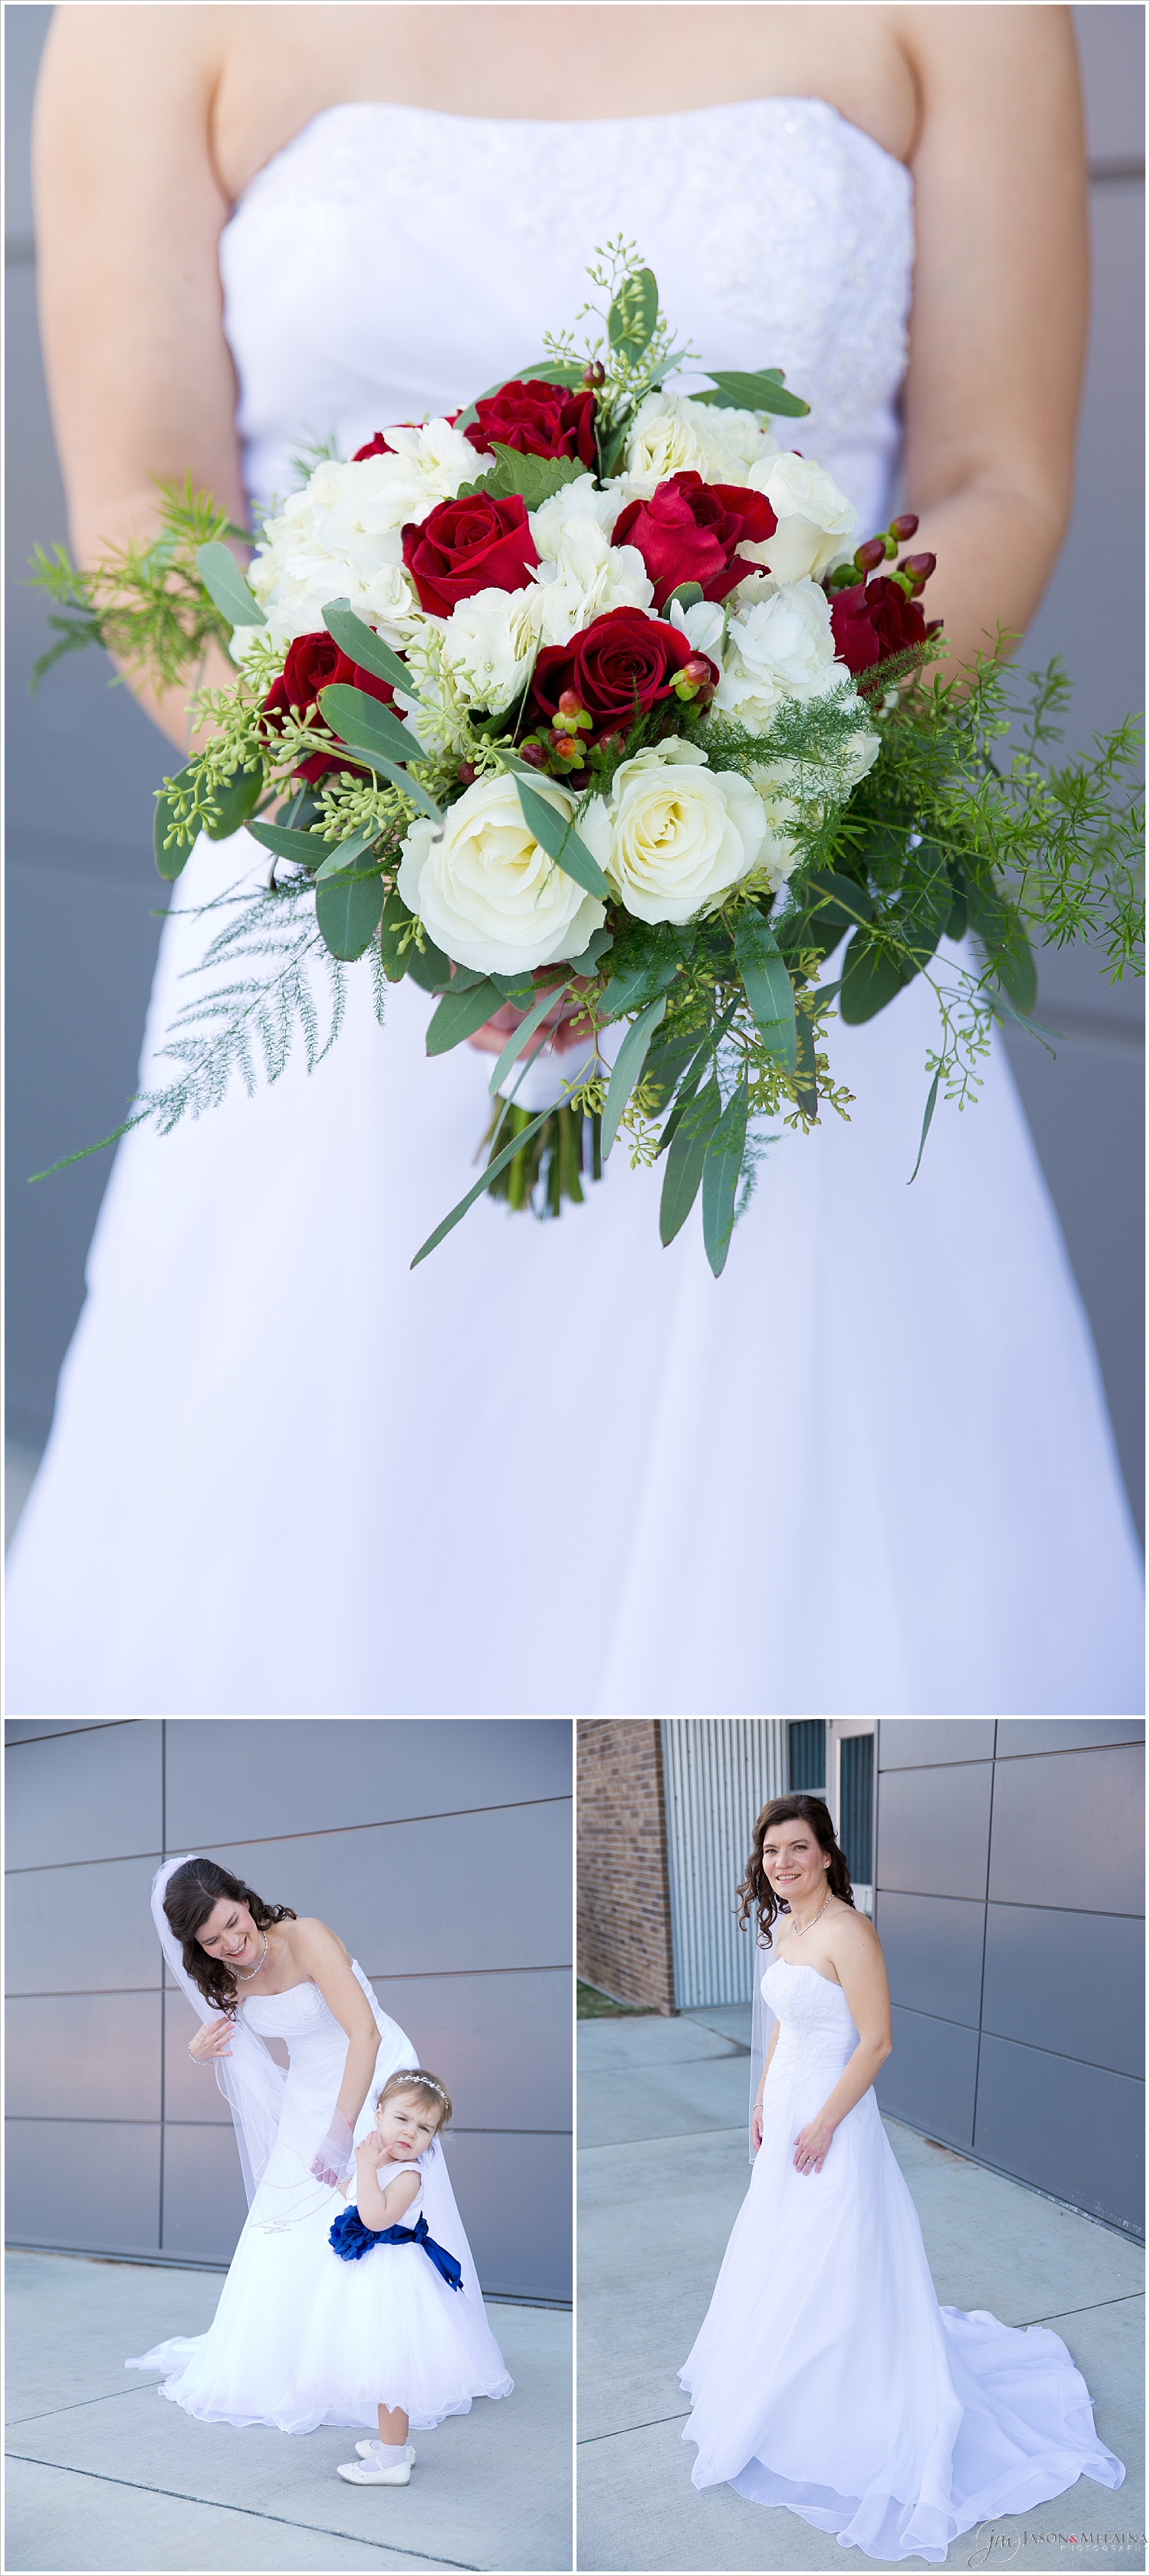 Bride's bouquet, and bride poses with flower girl